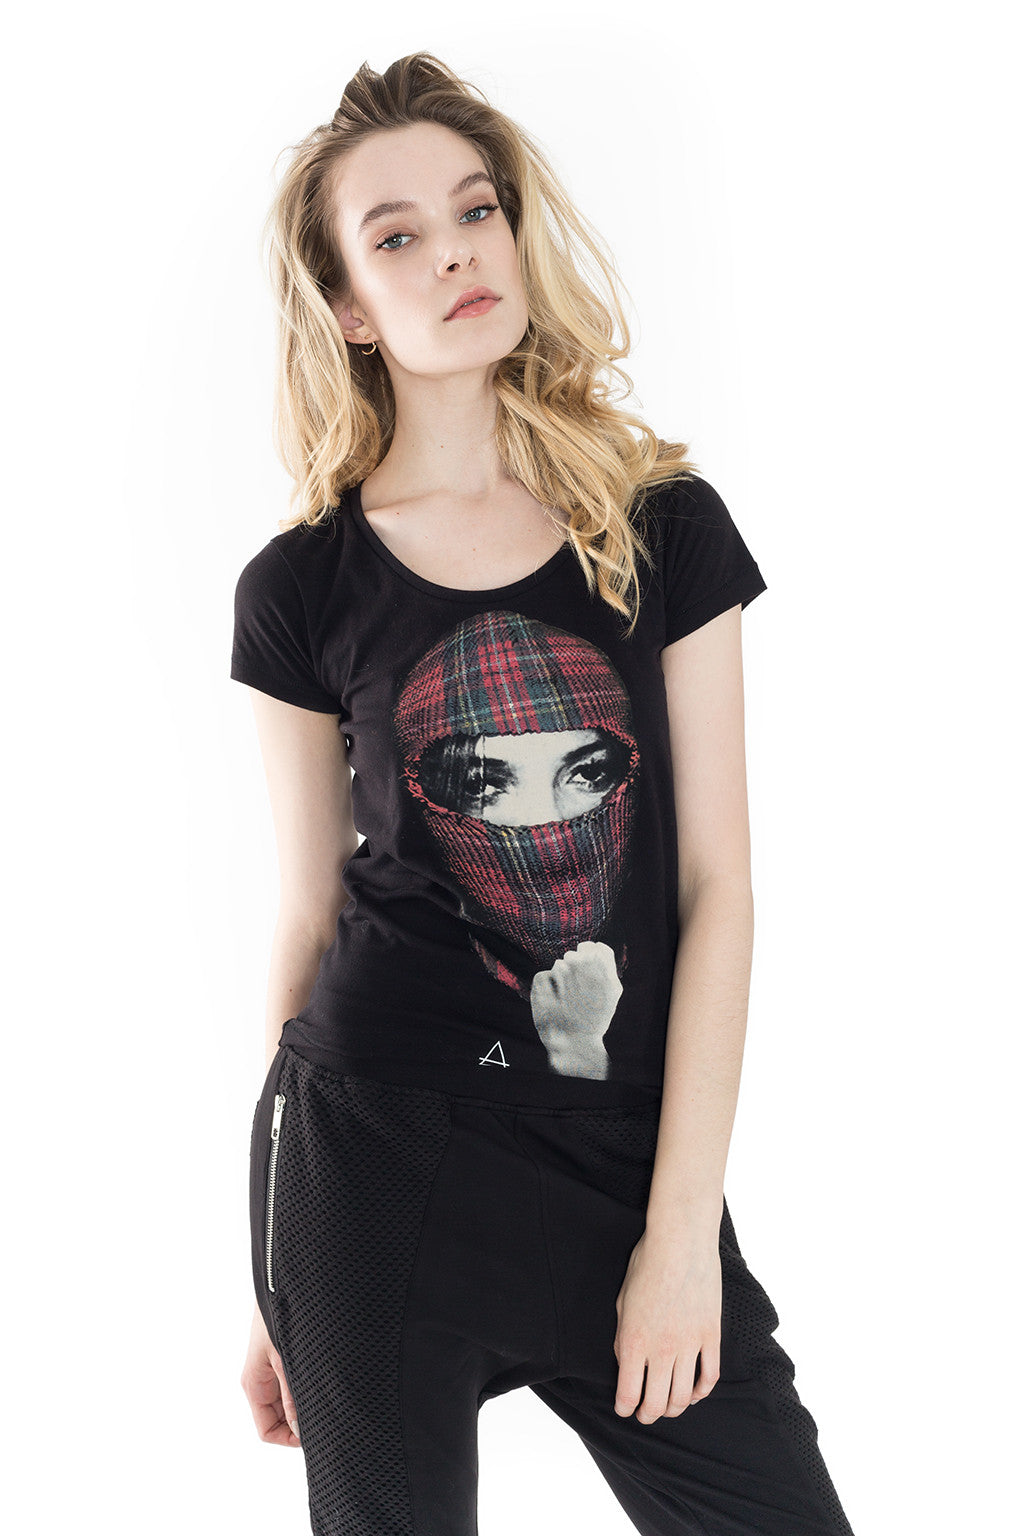 Catar W Printed T-Shirt - Eleven Paris - T-Shirt - TOPGEARNY